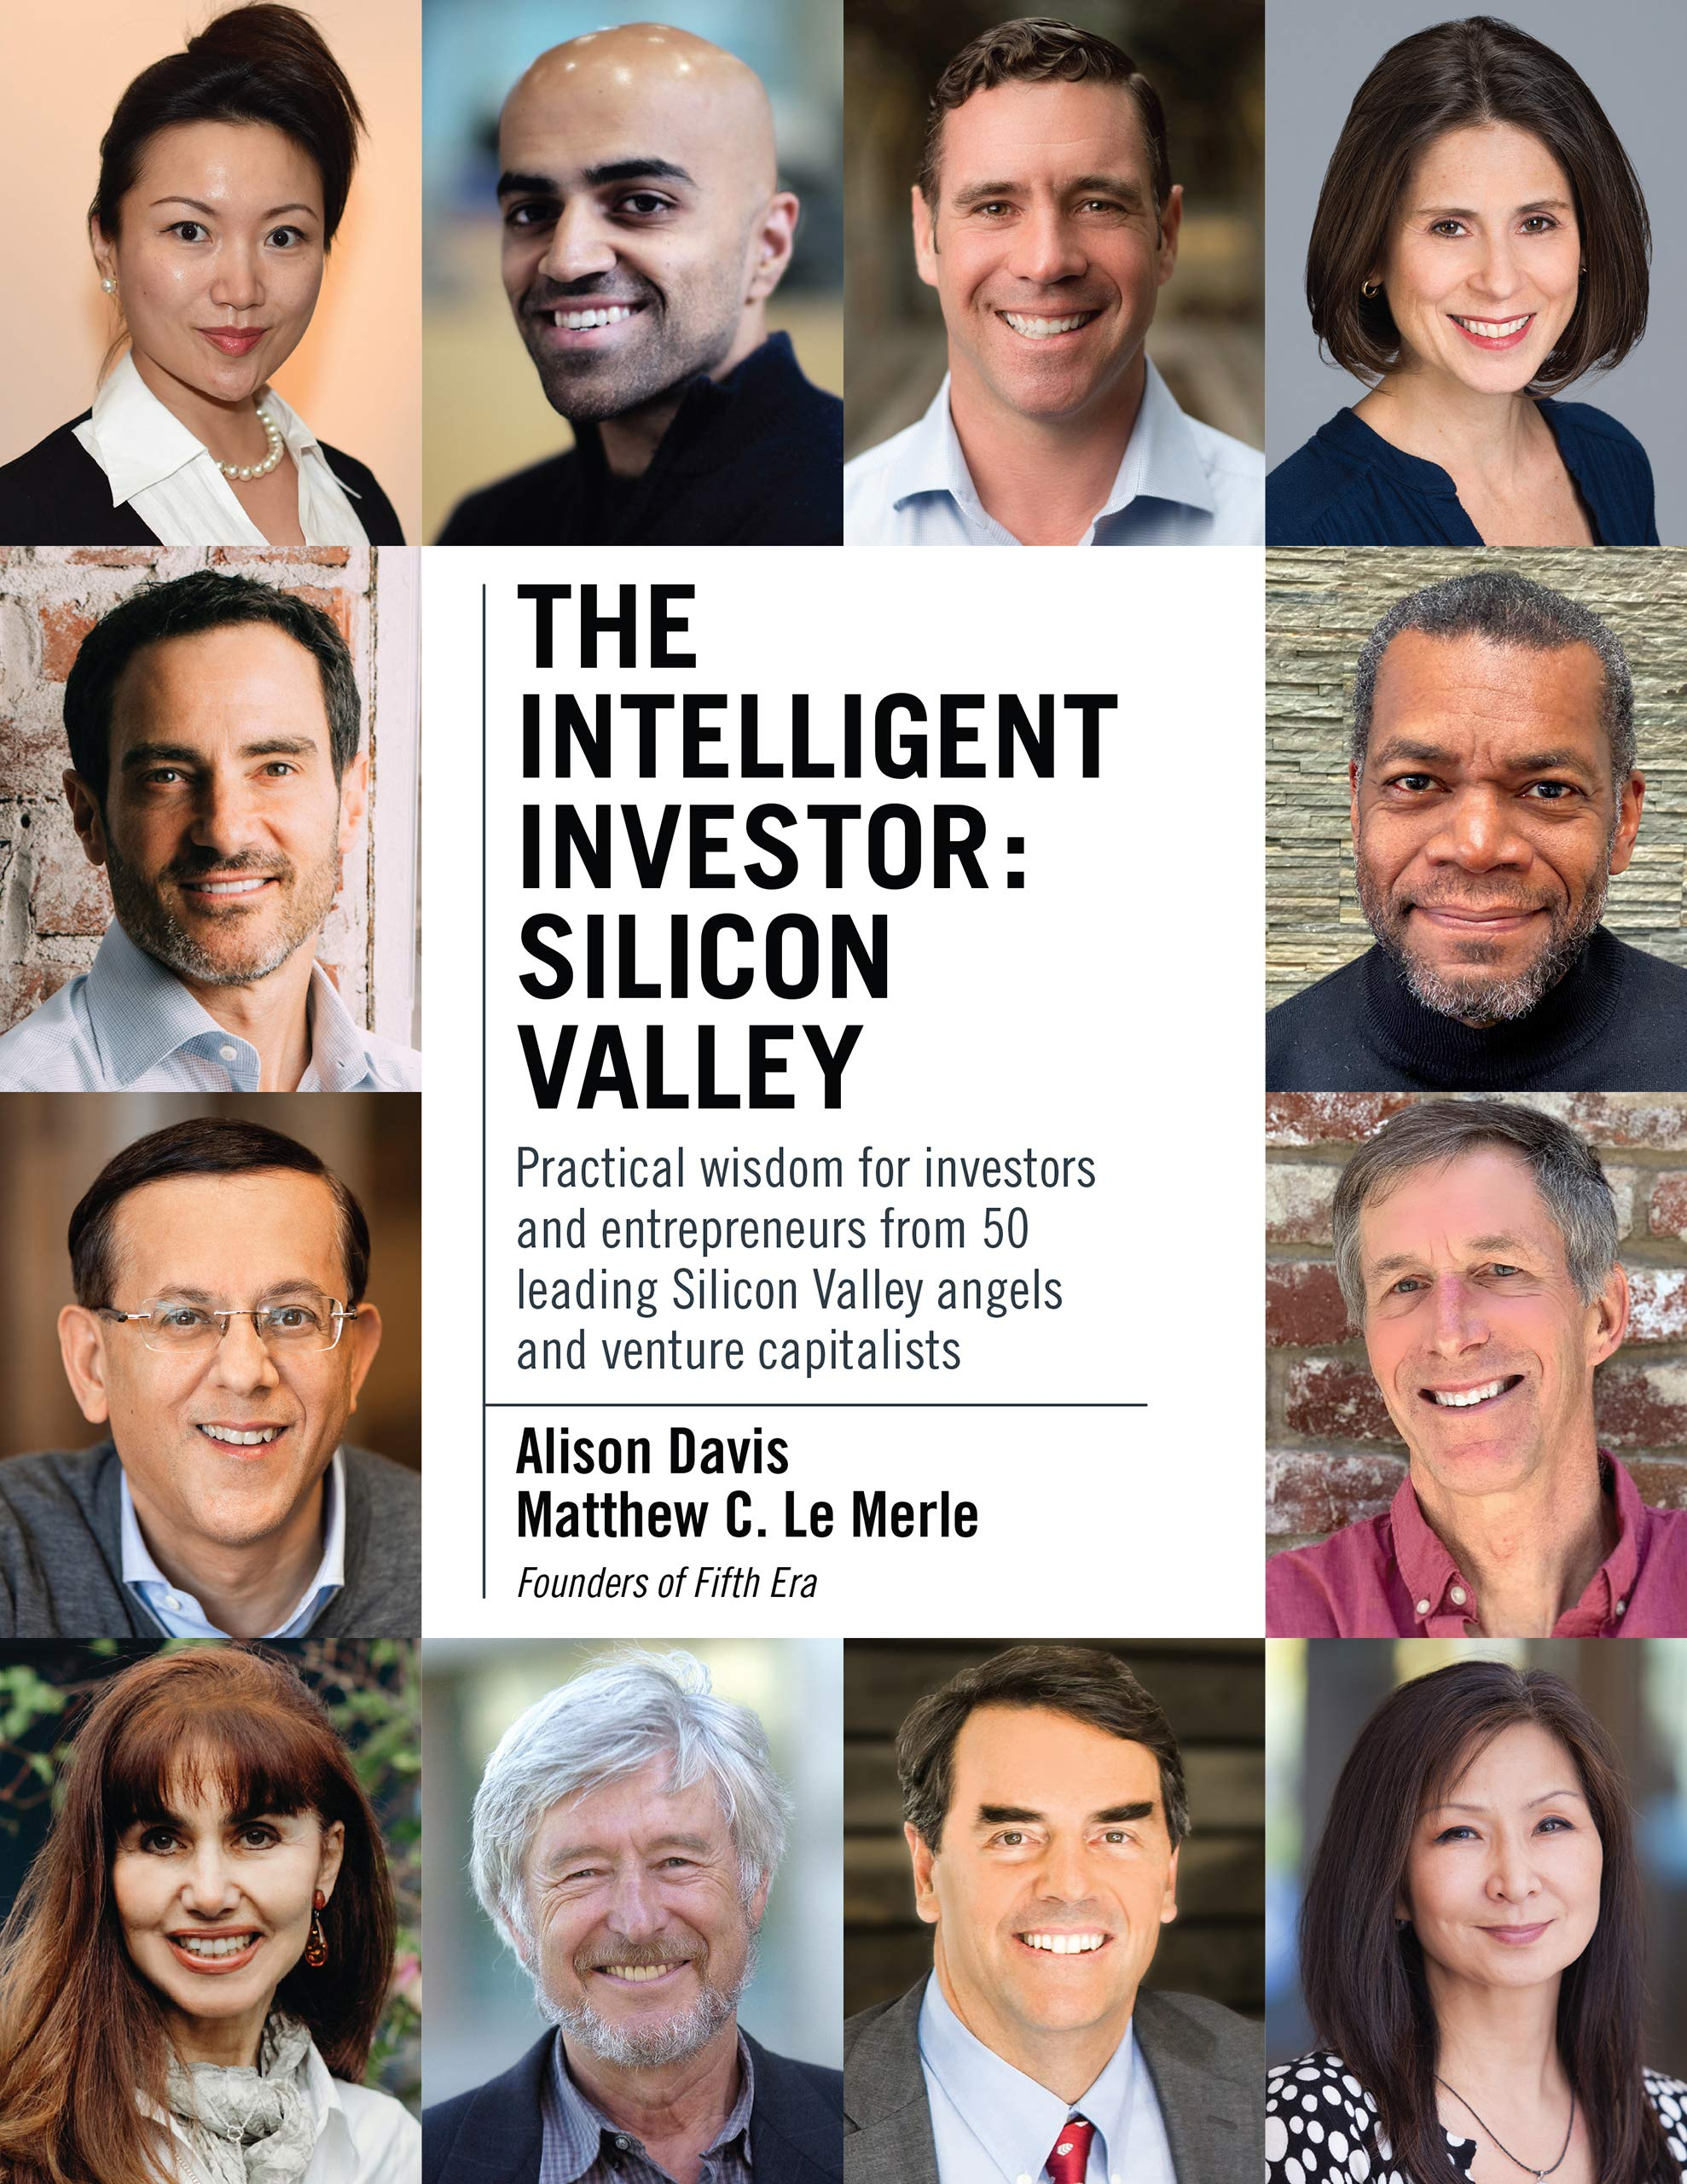 The Intelligent Investor - Silicon Valley: Practical wisdom for investors and entrepreneurs from 50 leading Silicon Valley angels and venture capitalists